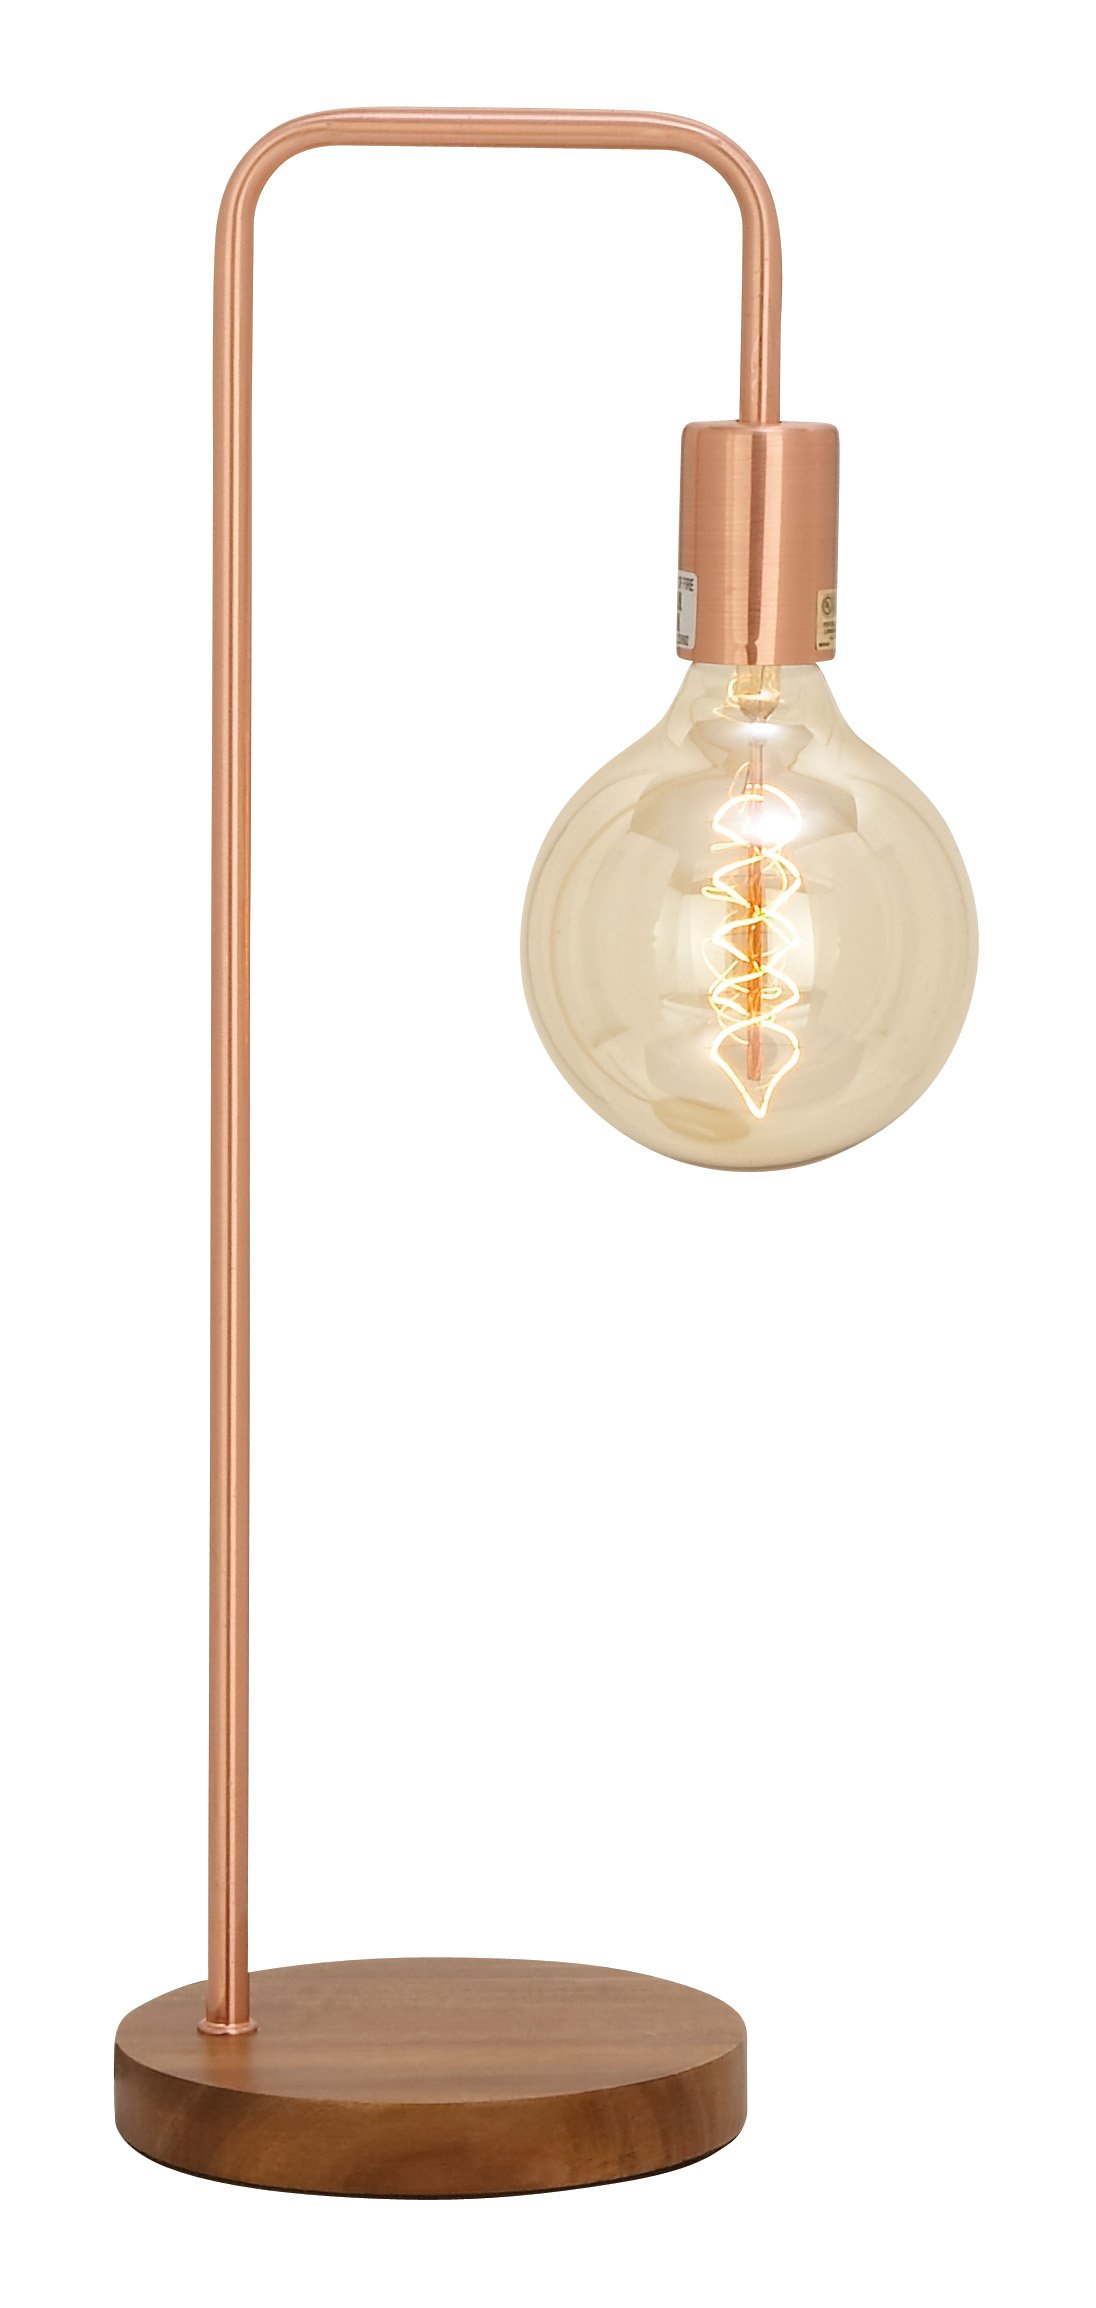 Modern 21 Inch Copper Iron Desk Lamp with Vintage Bulb